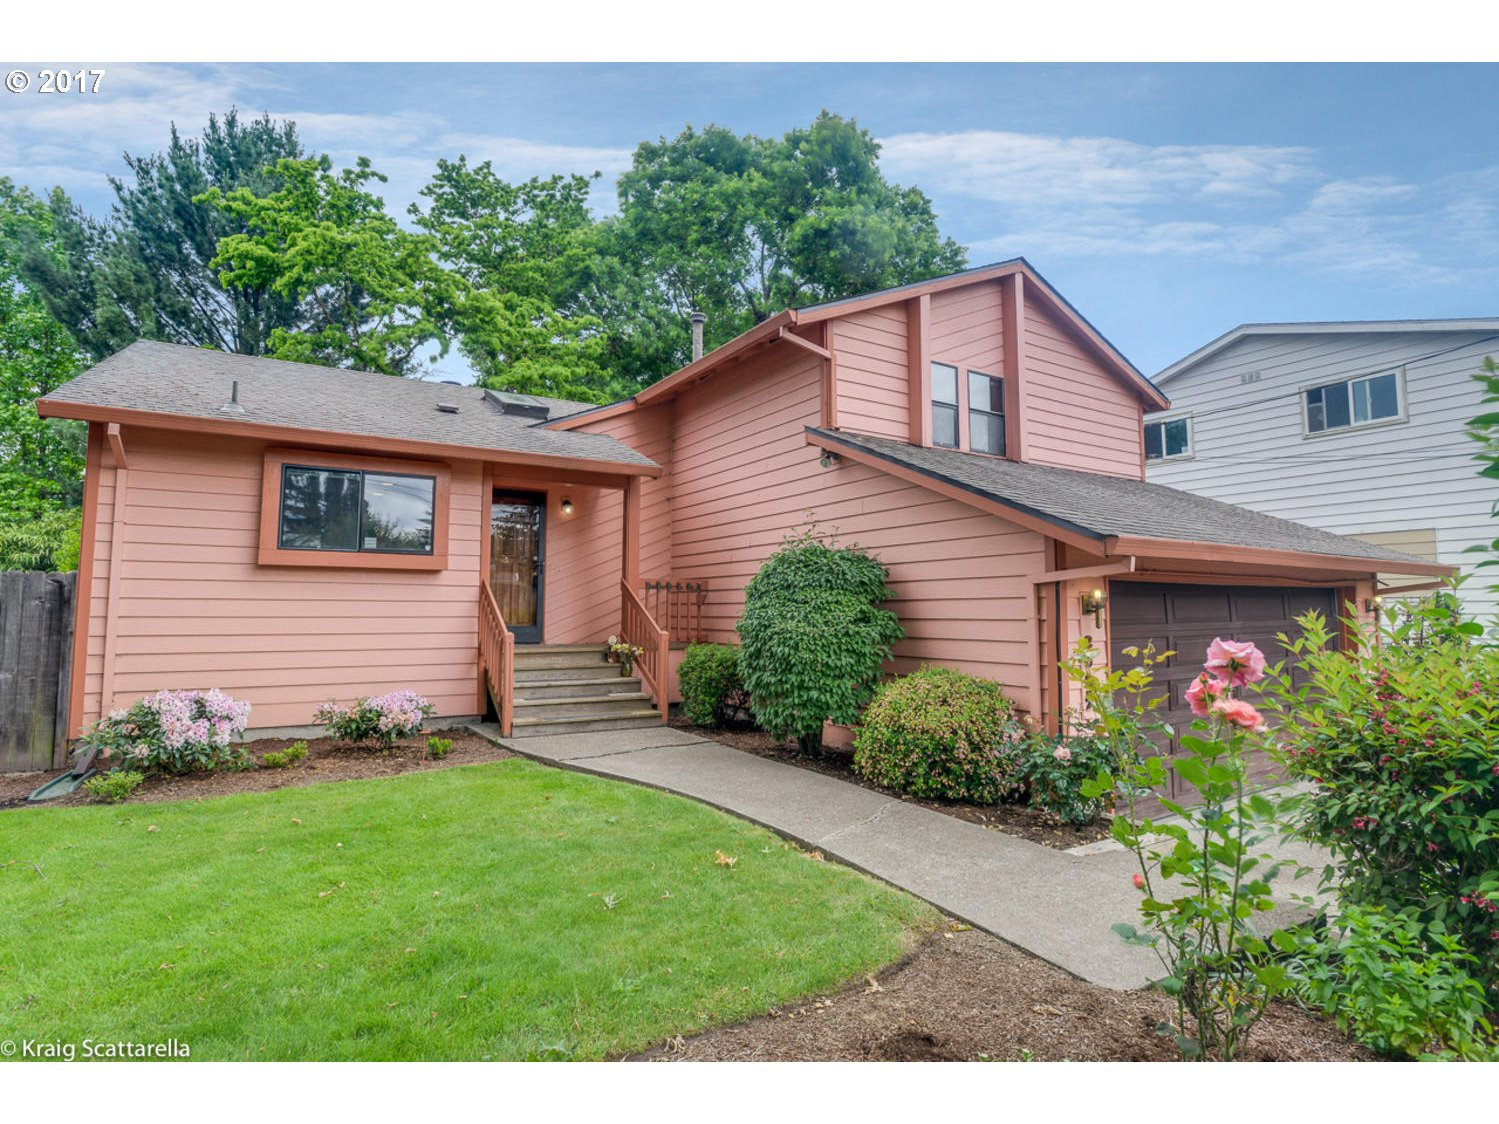 2027 SE LEXINGTON ST Portland Home Listings - The Rob Levy Team Real Estate